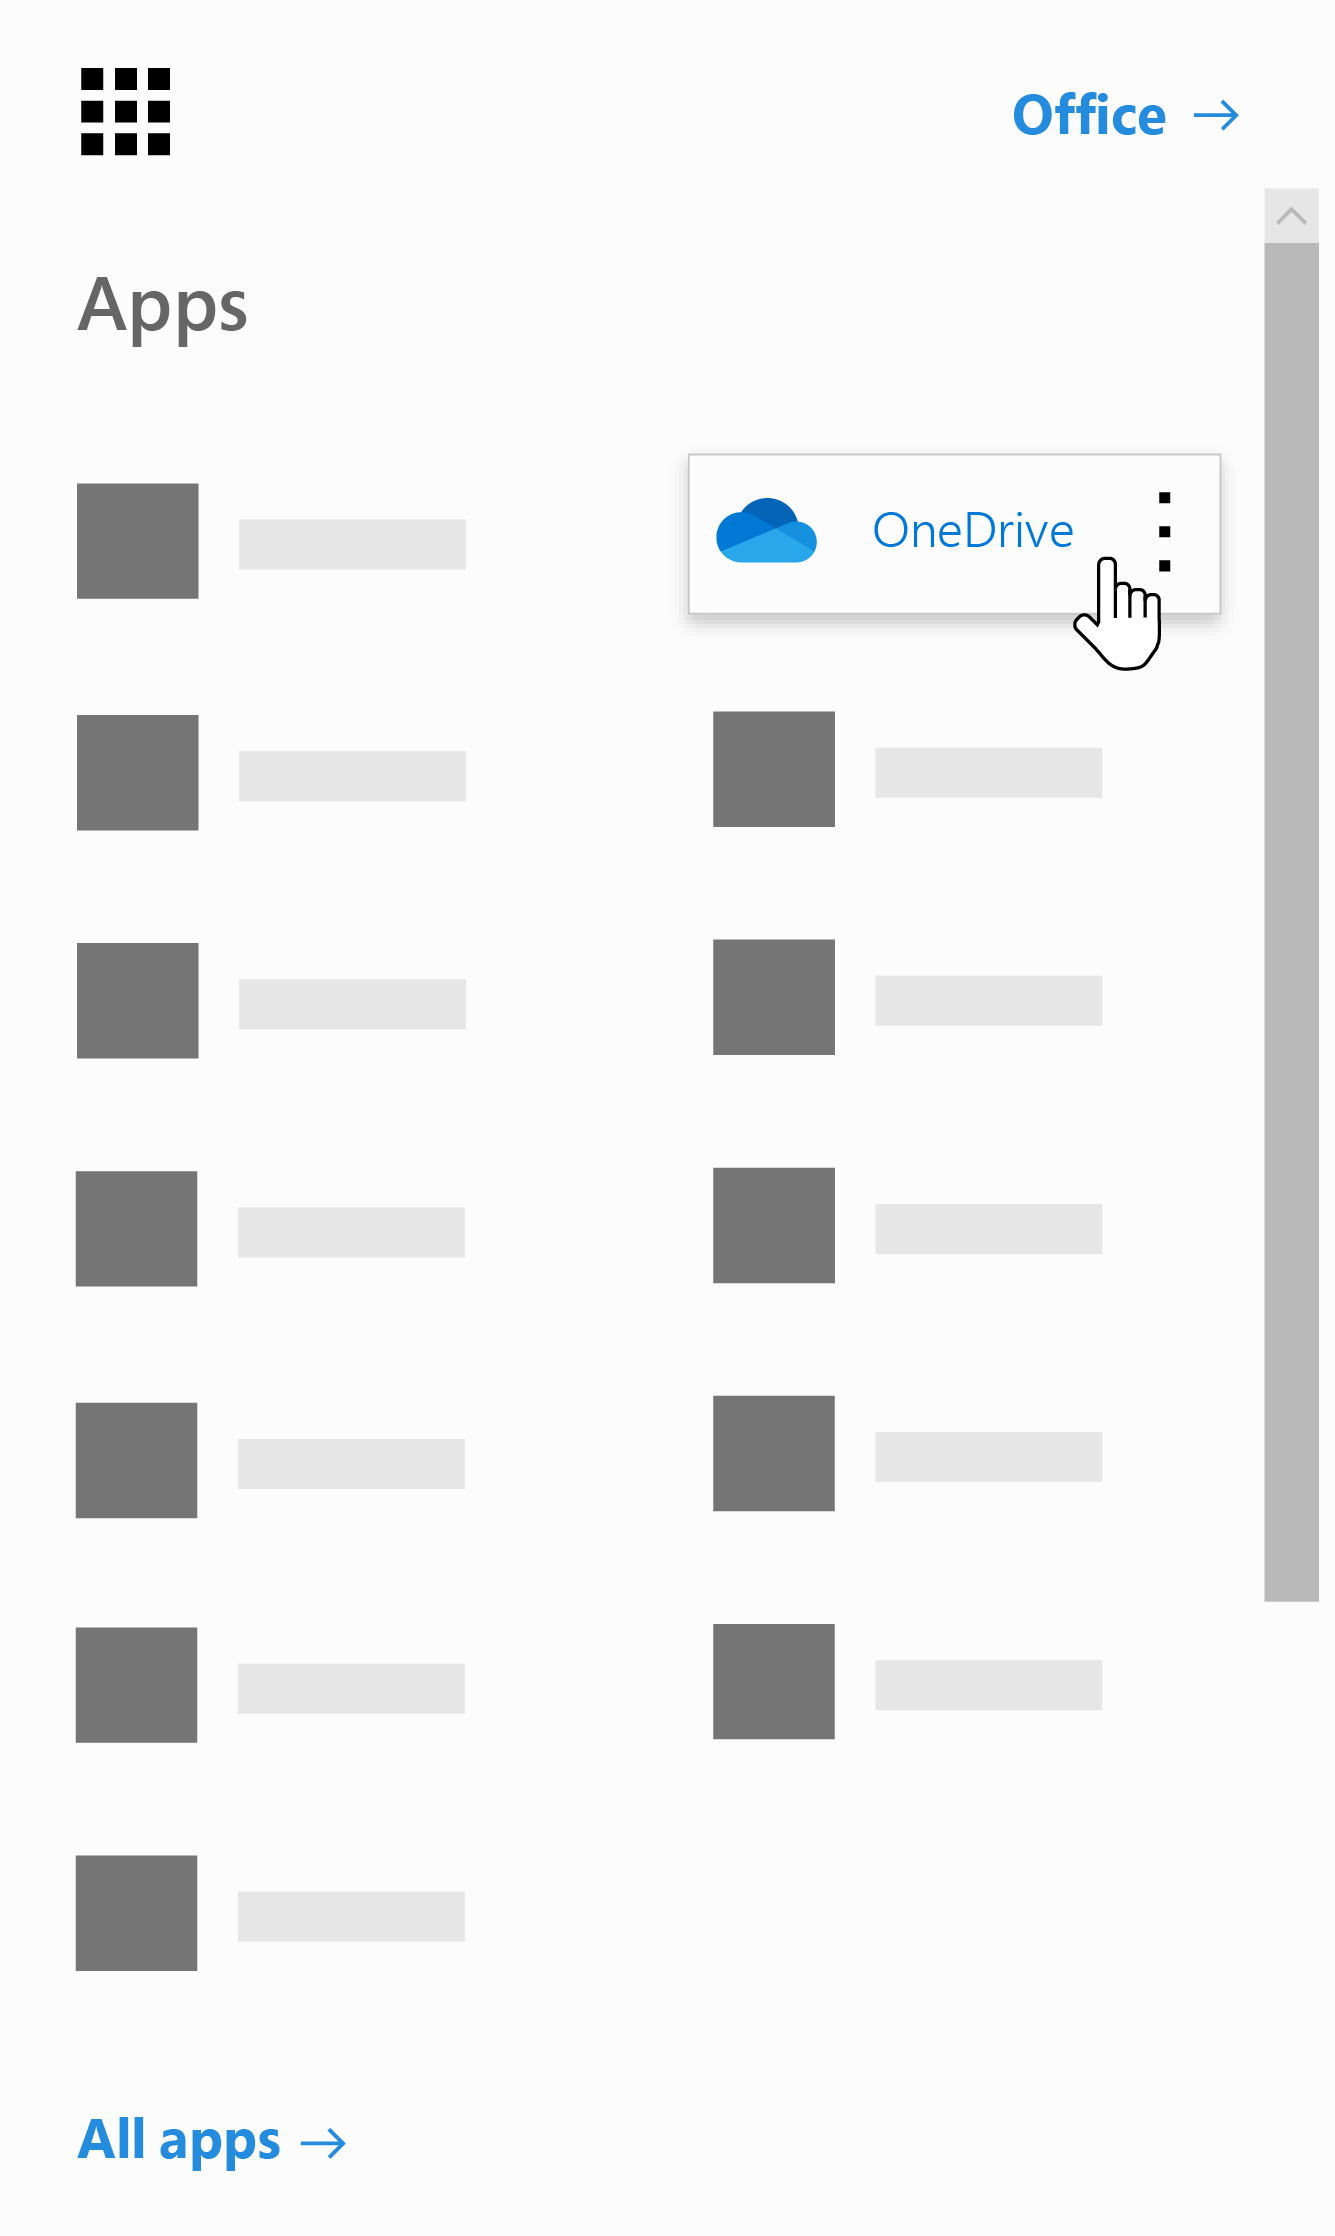 What Is OneDrive For Business?